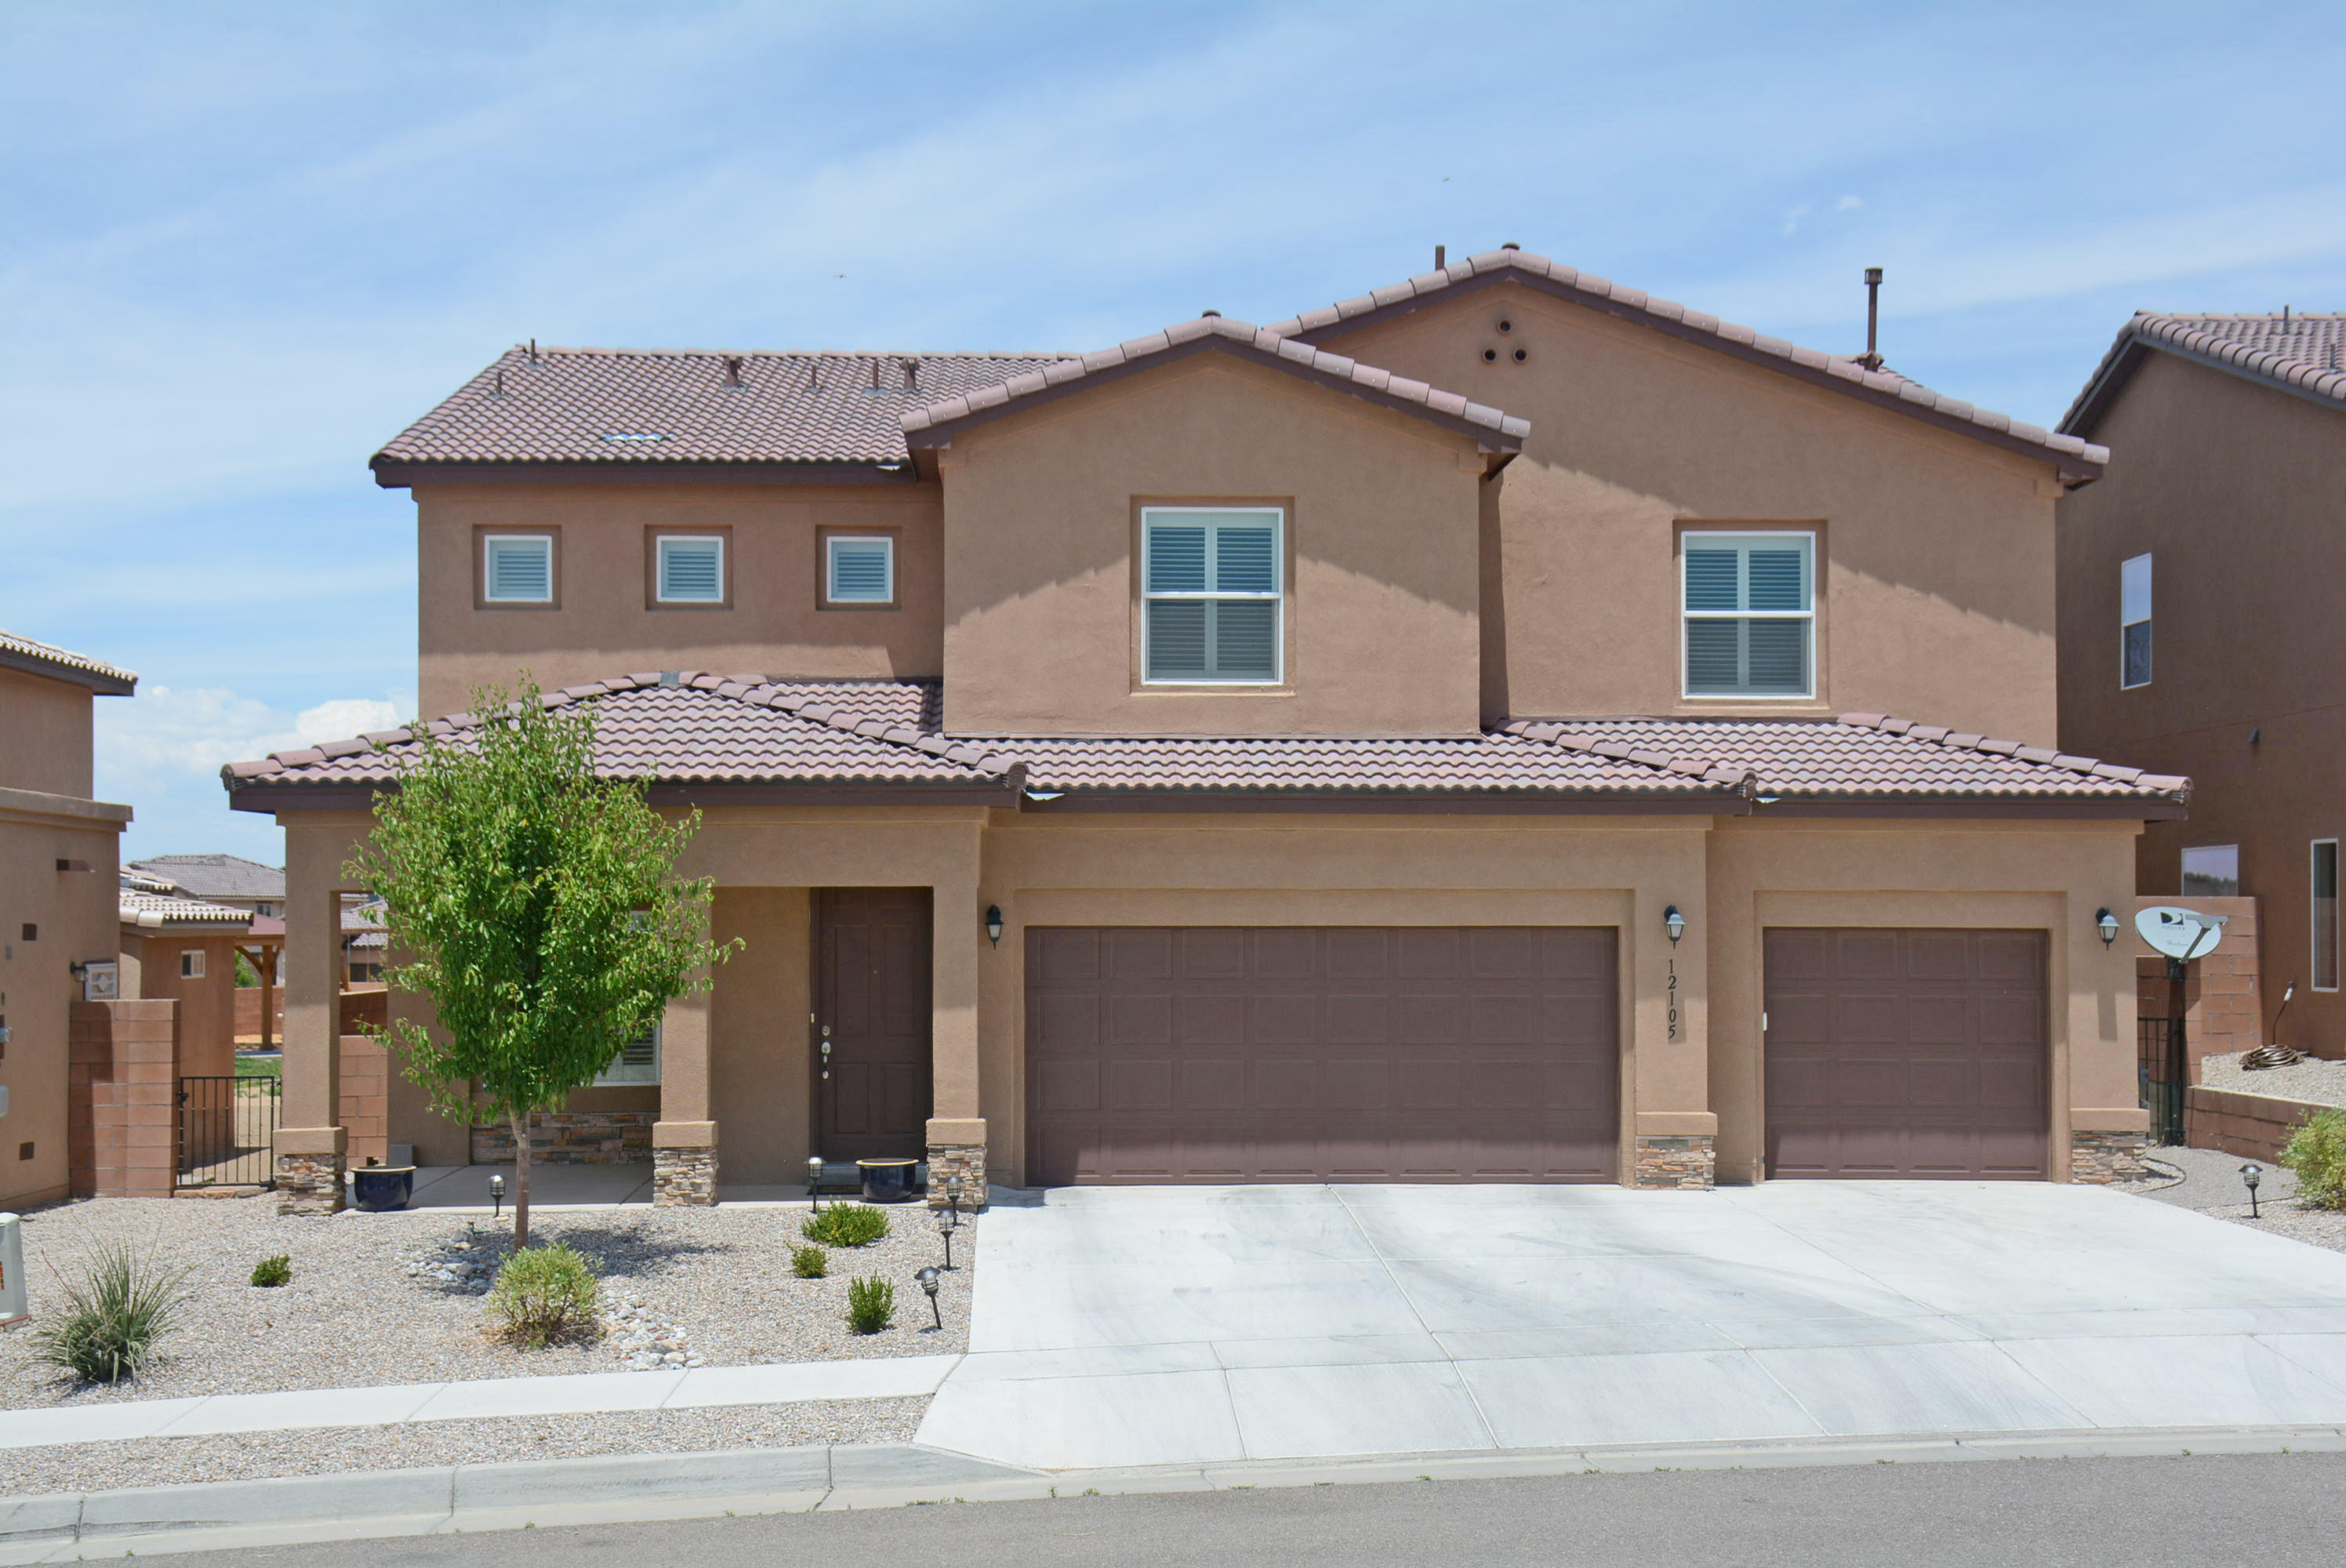 12105 POMPANO PLACE SE, ALBUQUERQUE, NM 87123